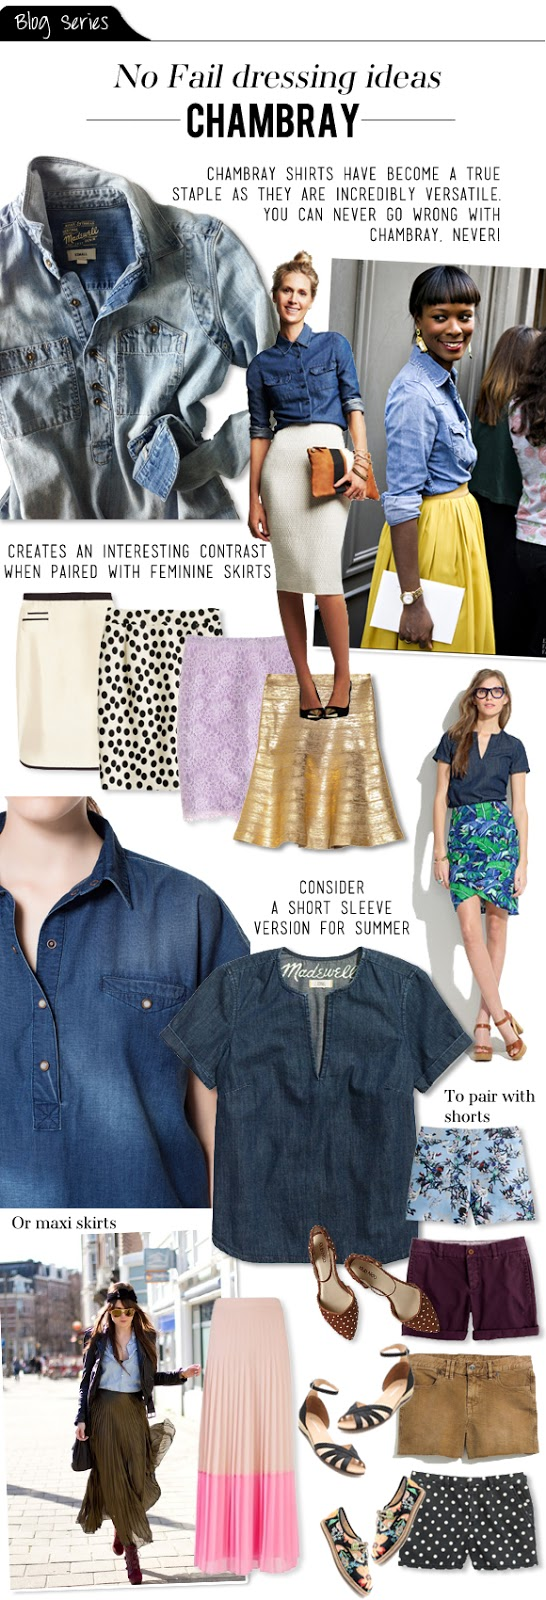 Blog series no fail dressing ideas chambray shirts for Cuisine you chambray